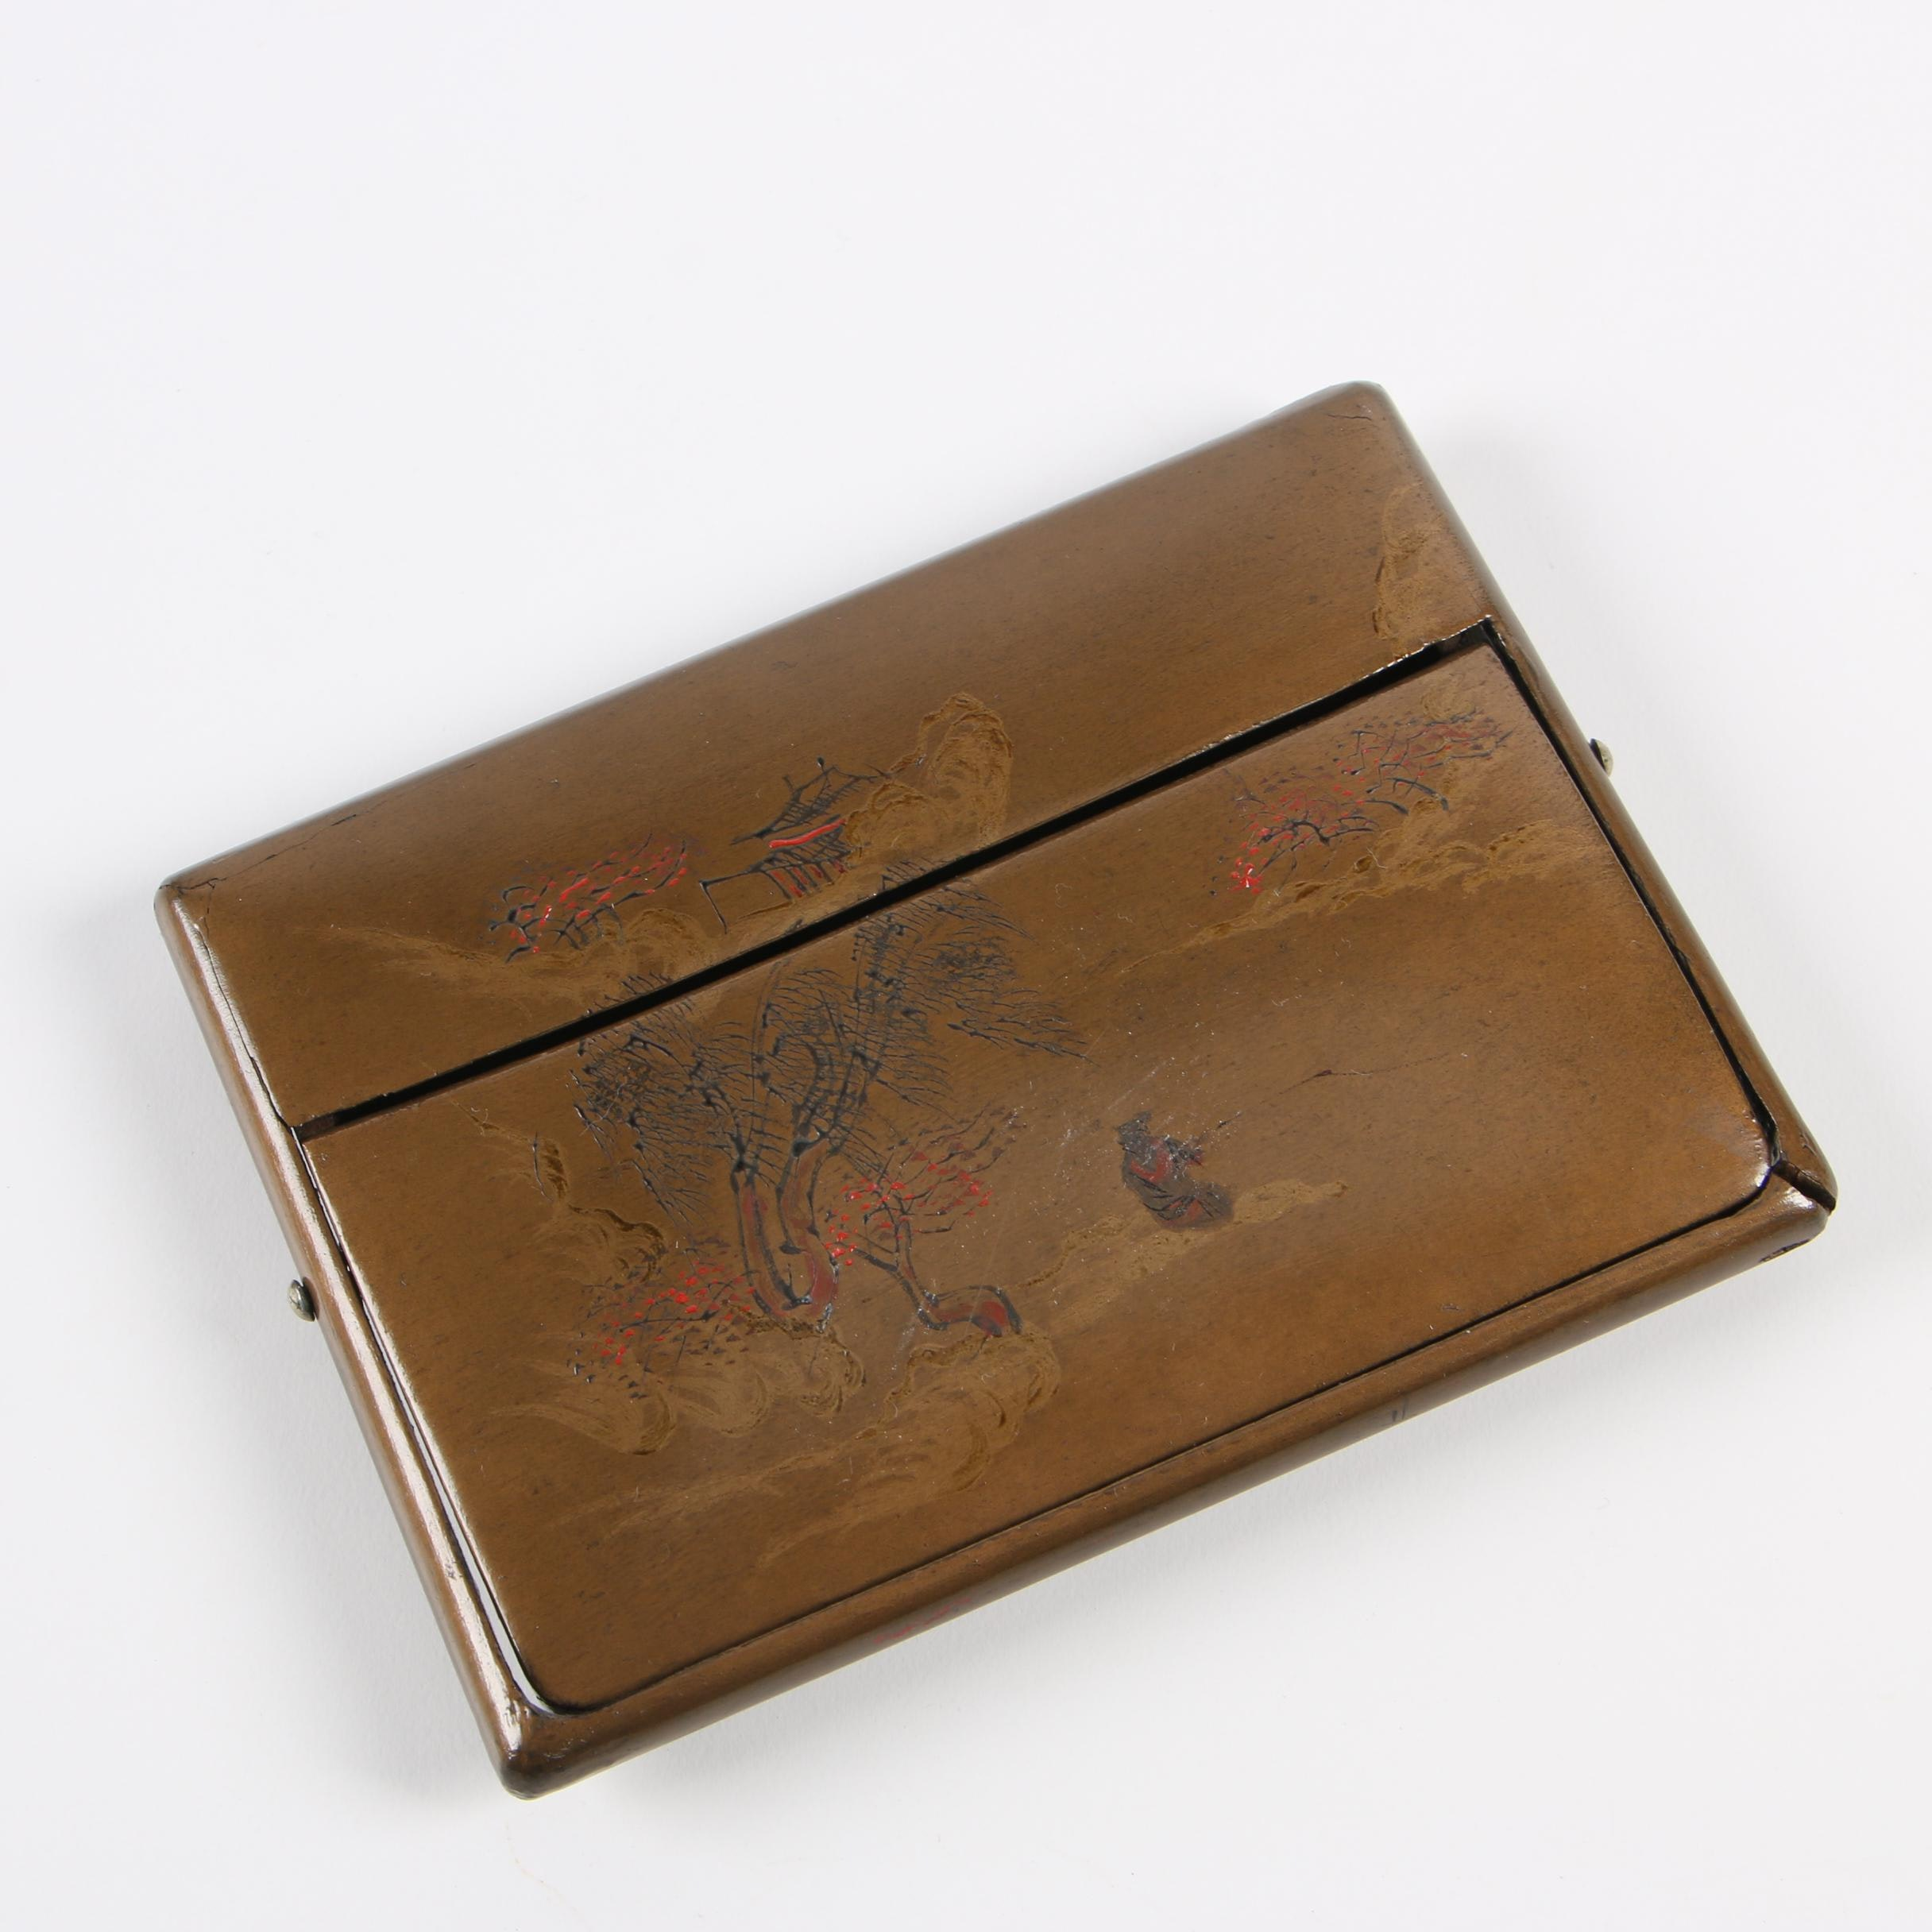 Chinese Hand-Decorated Collapsible Card Holder